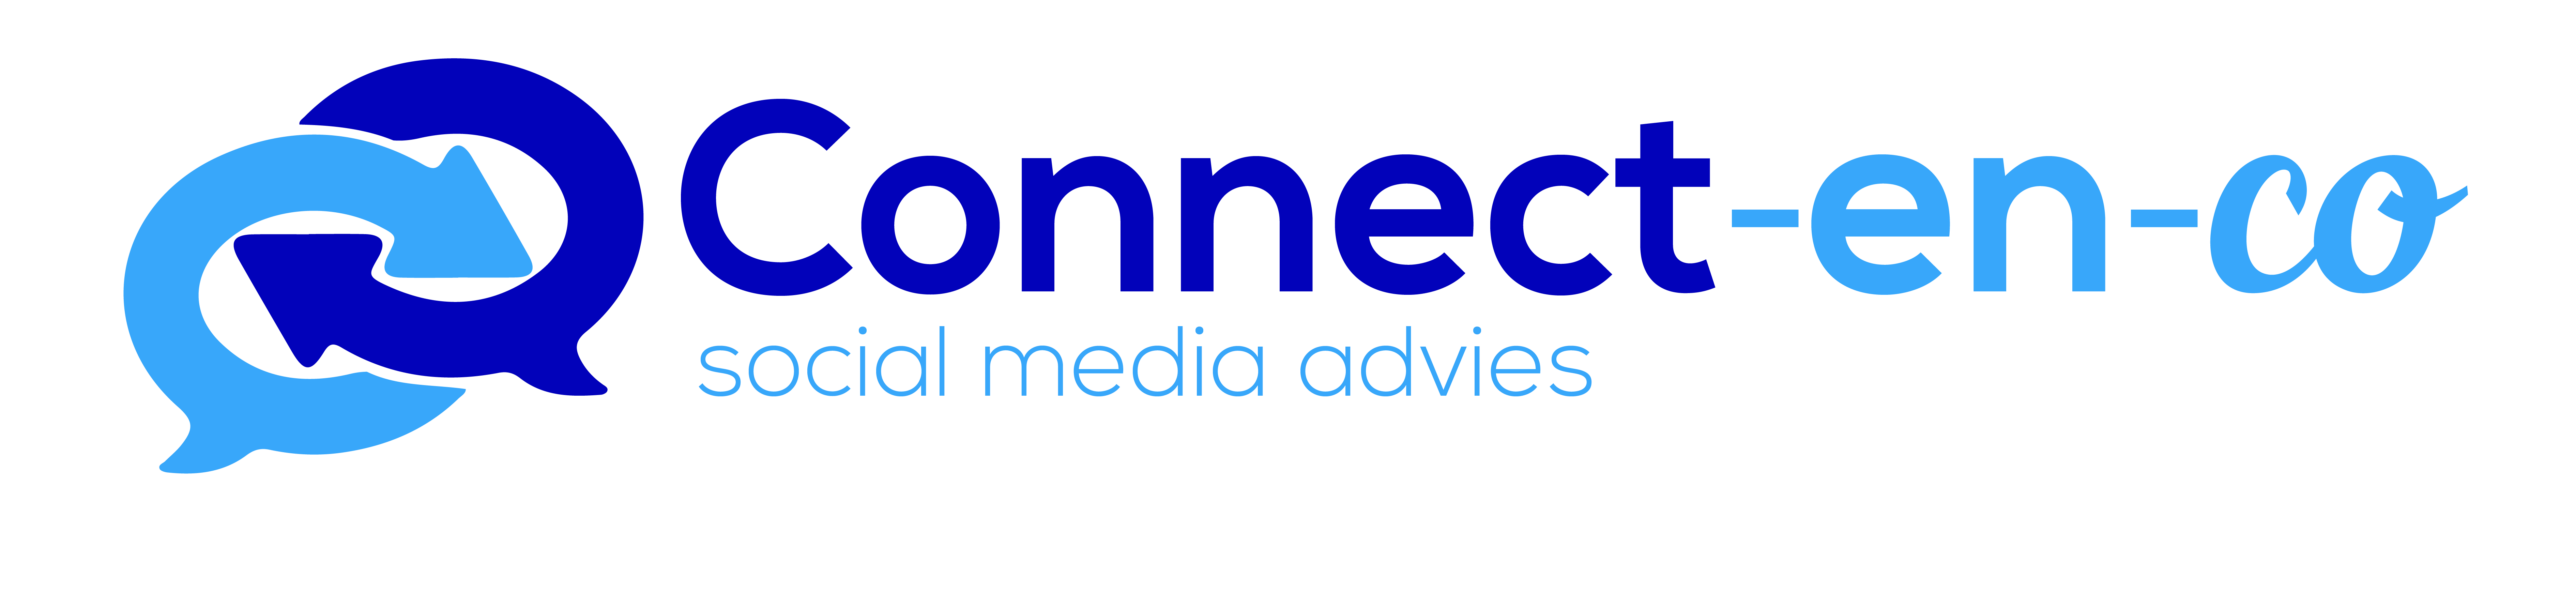 Connect-en-co: social media advies